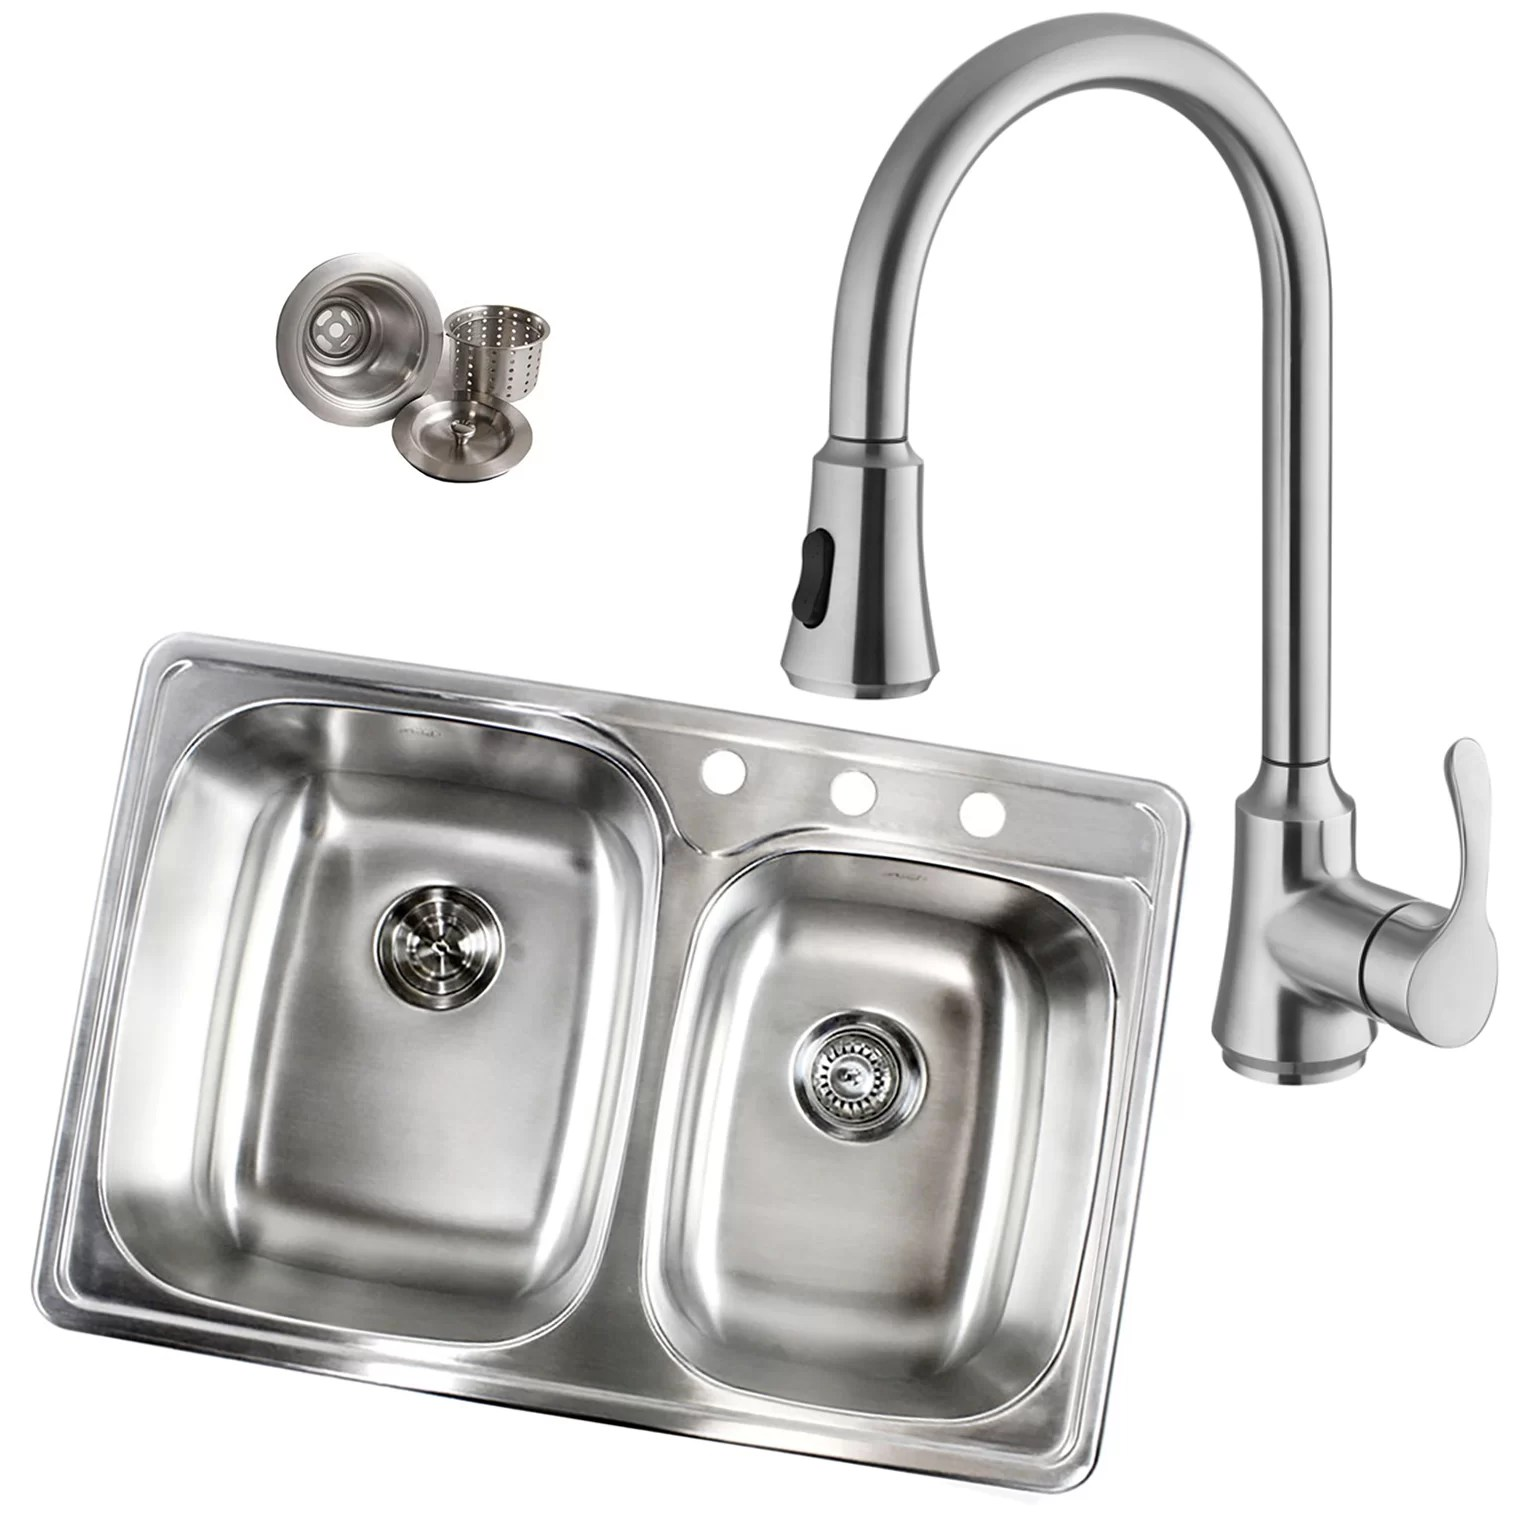 Tools Home Improvement 33 Inch Top Mount Drop In Stainless Steel 70 30 Double Bowl Kitchen Sink With 3 Faucet Holes 18 Gauge Double Bowl